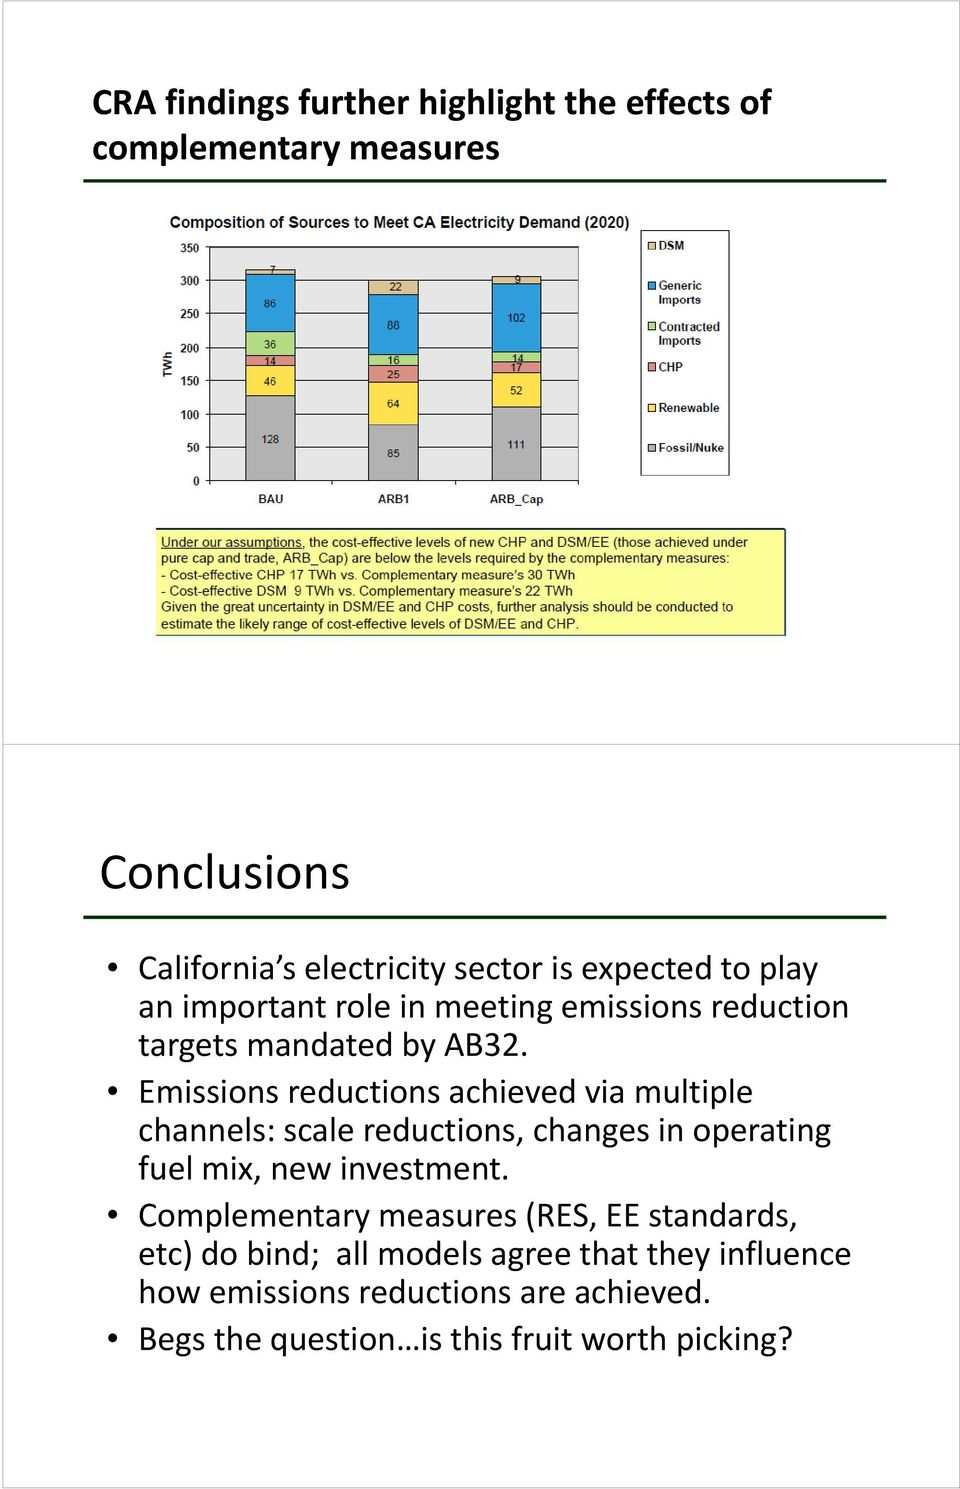 Emissions reductions achieved via multiple channels: scale reductions, changes in operating fuel mix, new investment.